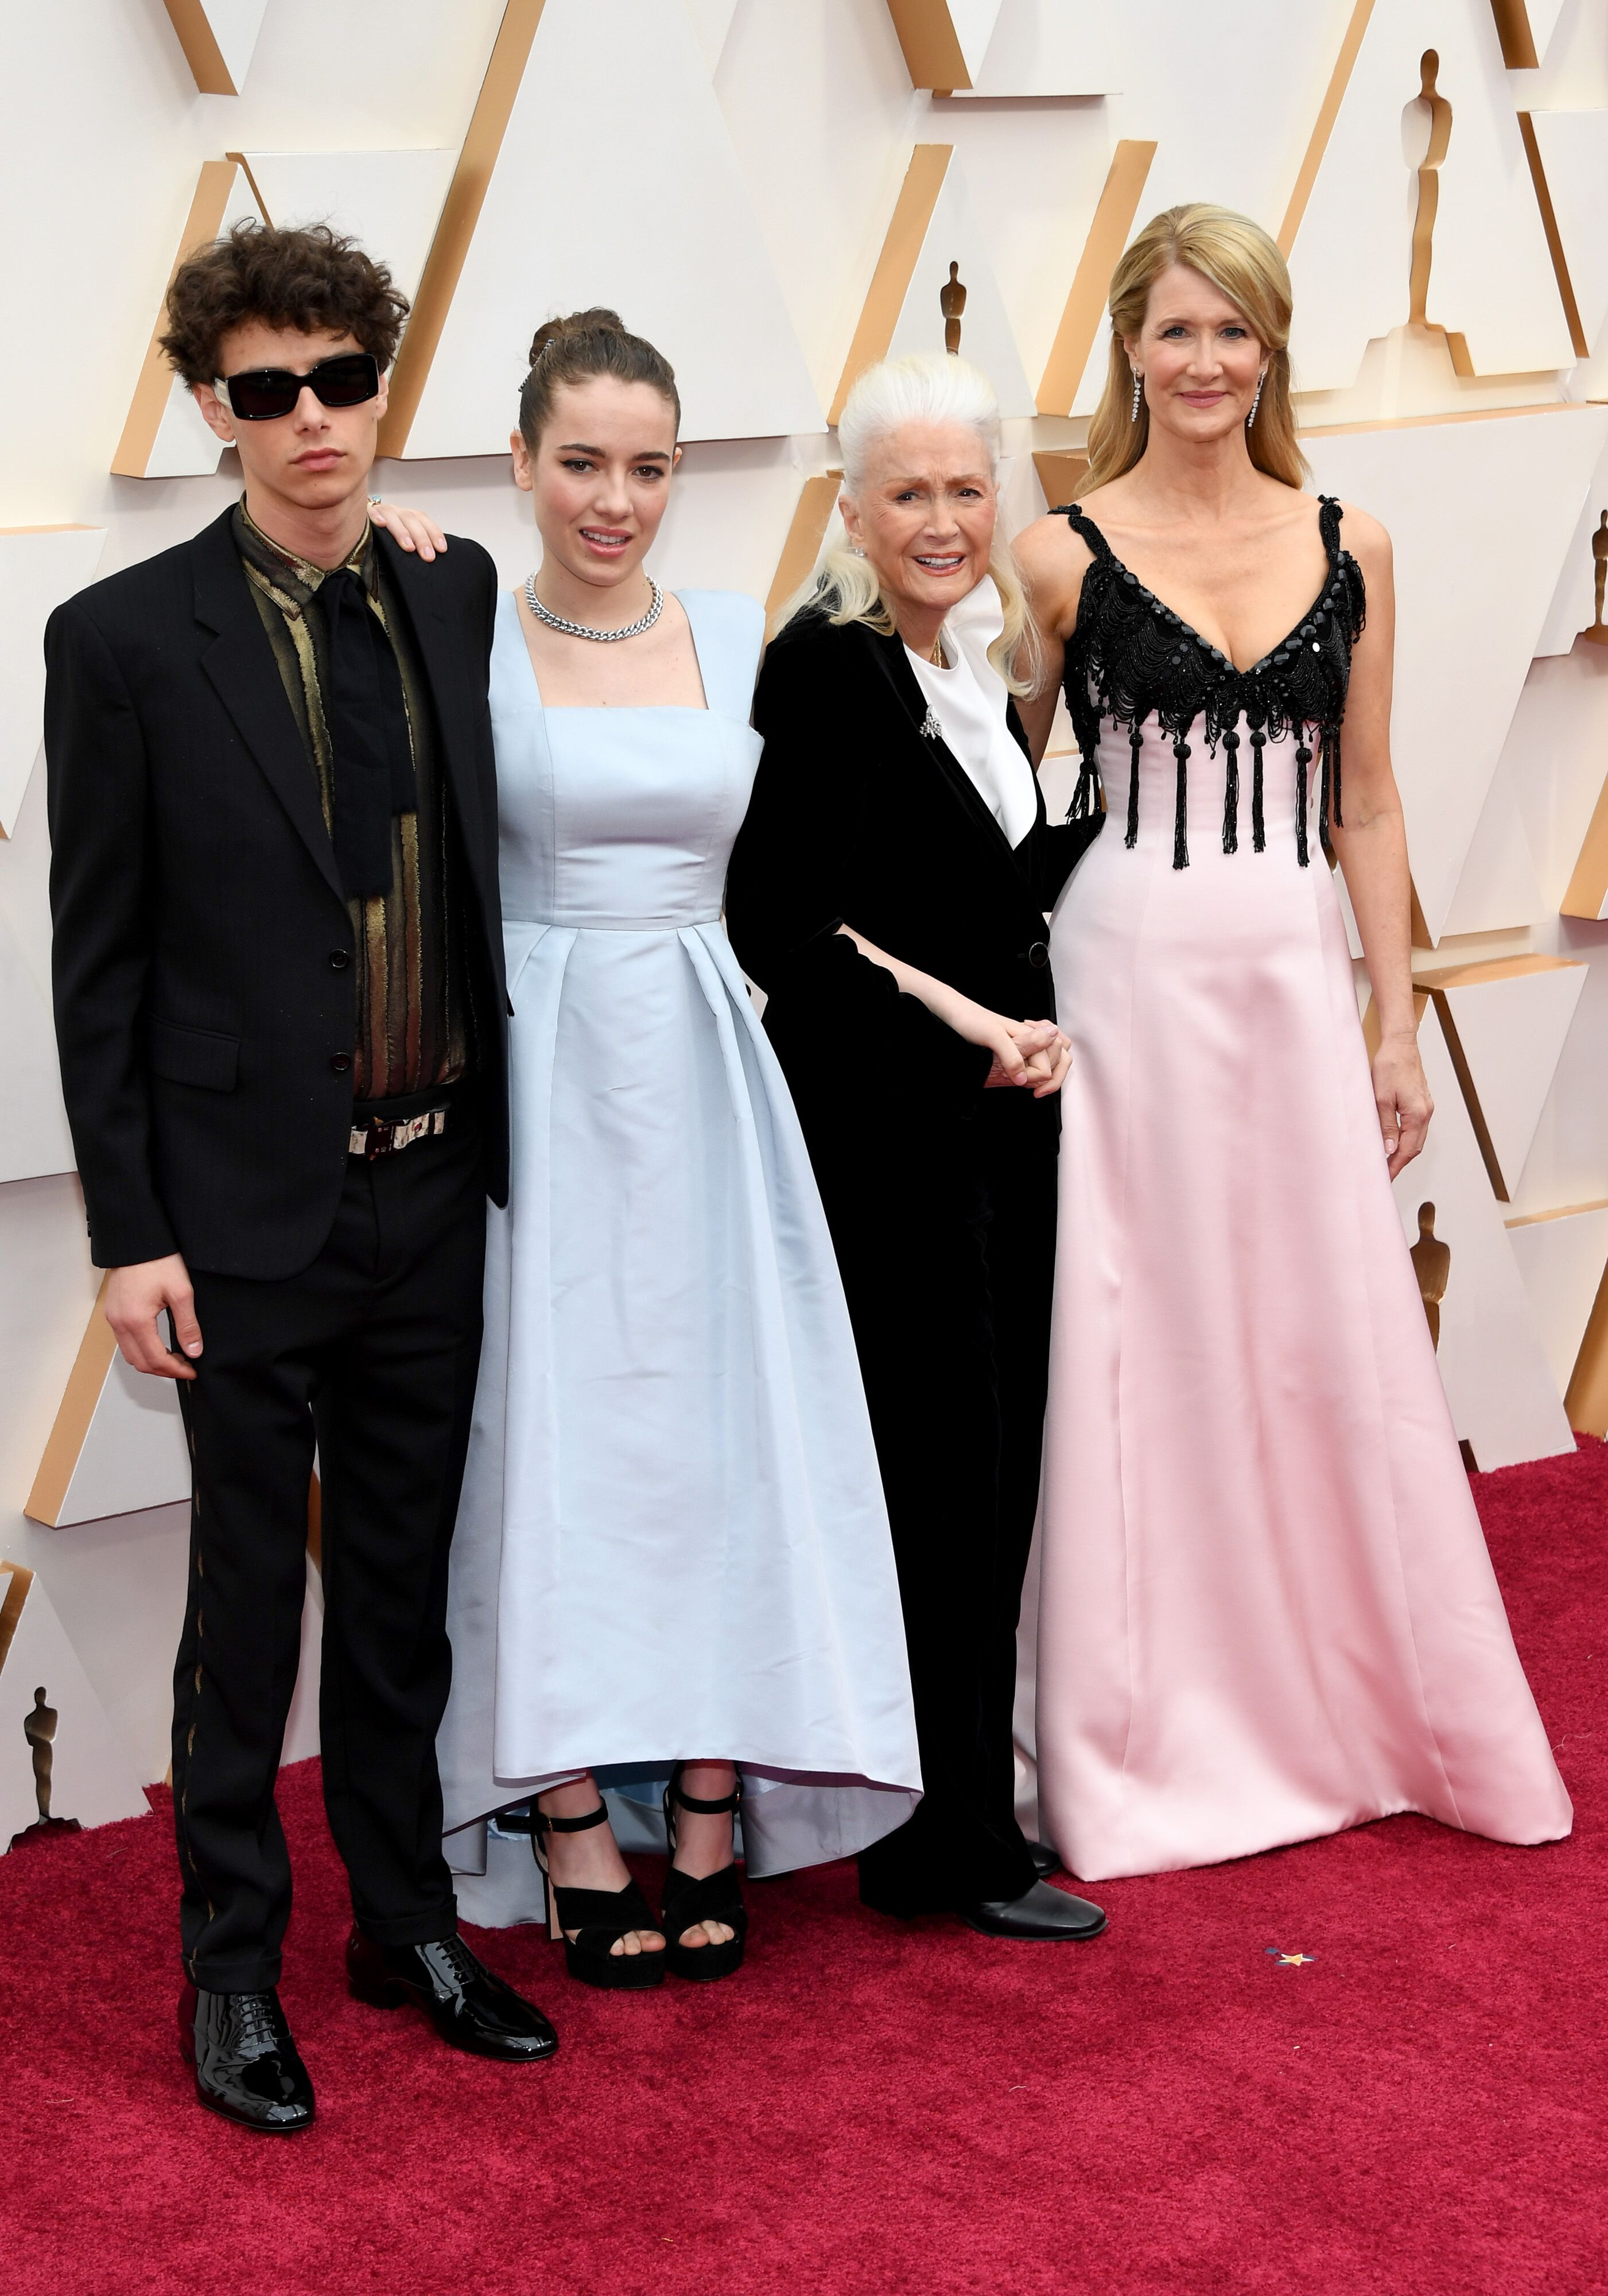 Ellery Harper, Jaya Harper, Diane Ladd and Laura Dern attend the 92nd Academy Awards in Hollywood and Highland on February 09, 2020 |  Photo: Getty Images